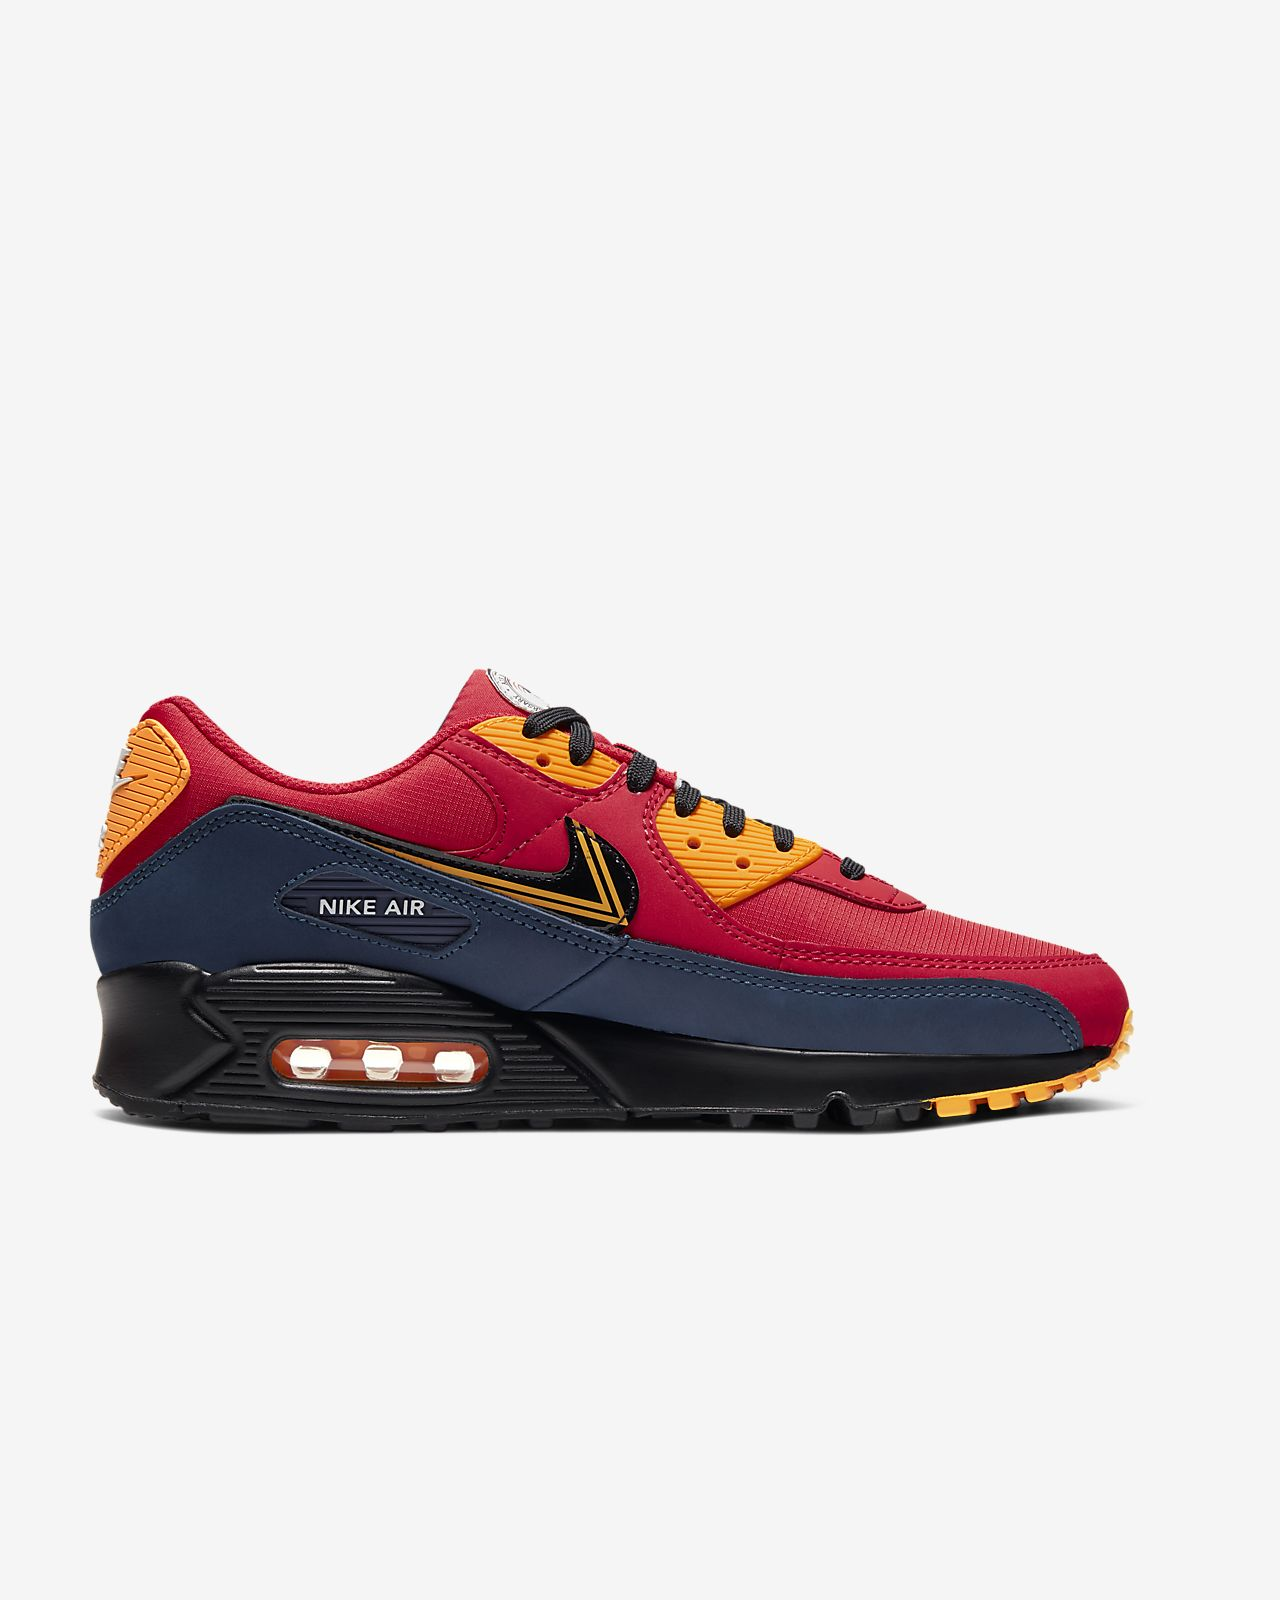 Trend Factory Sale Nike Air Max 90 Premium Running Shoes